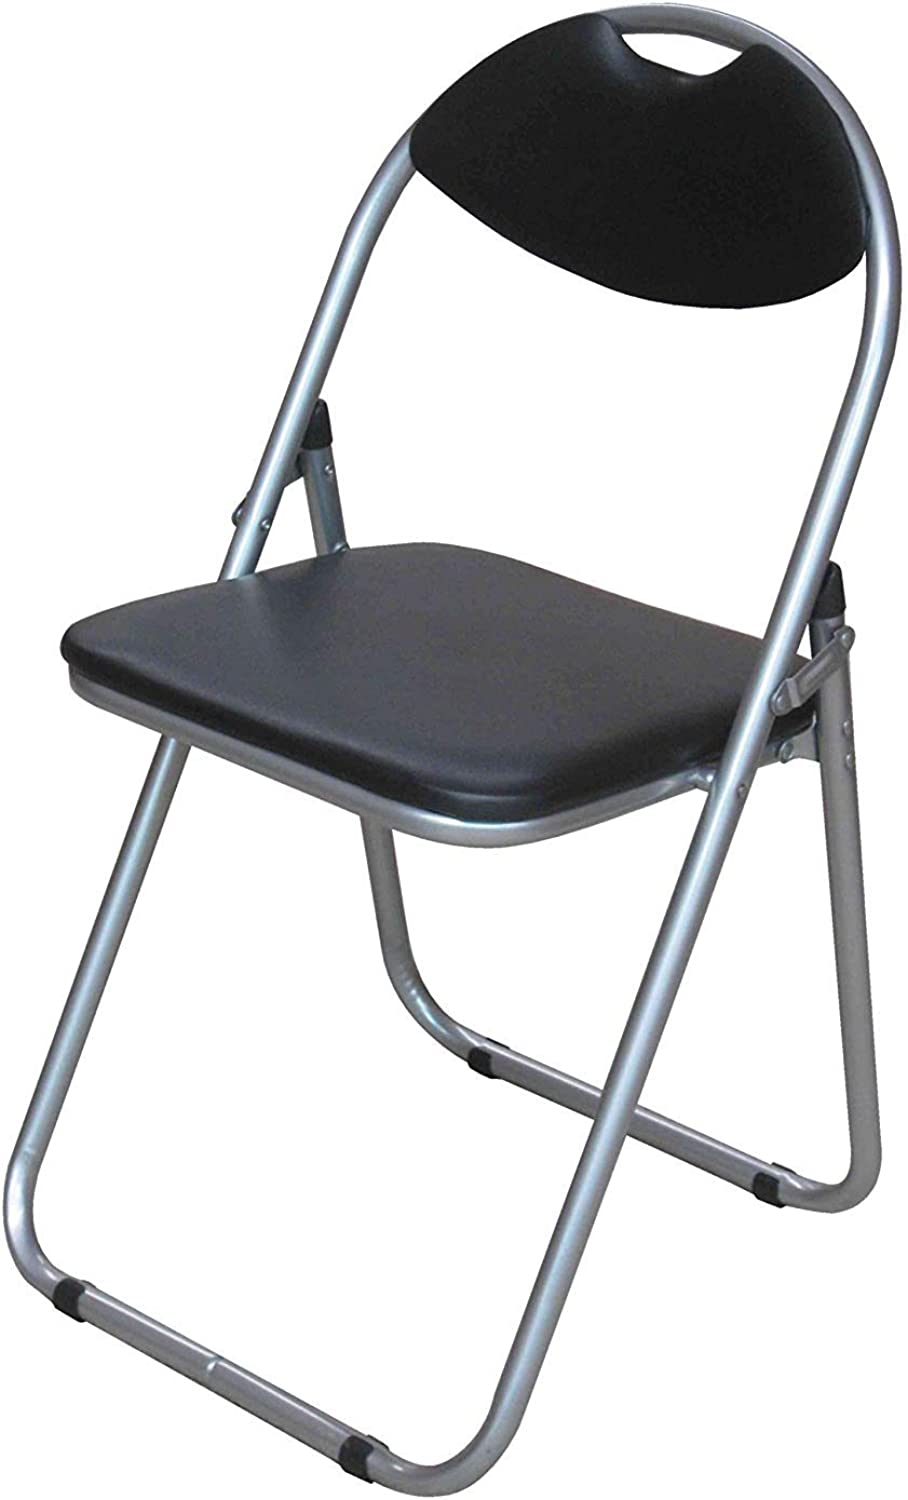 Premier Housewares Folding Chair with Leather Effect Seat and Silver Powder Coated Frame, 79 x 45 x 47 cmBlack